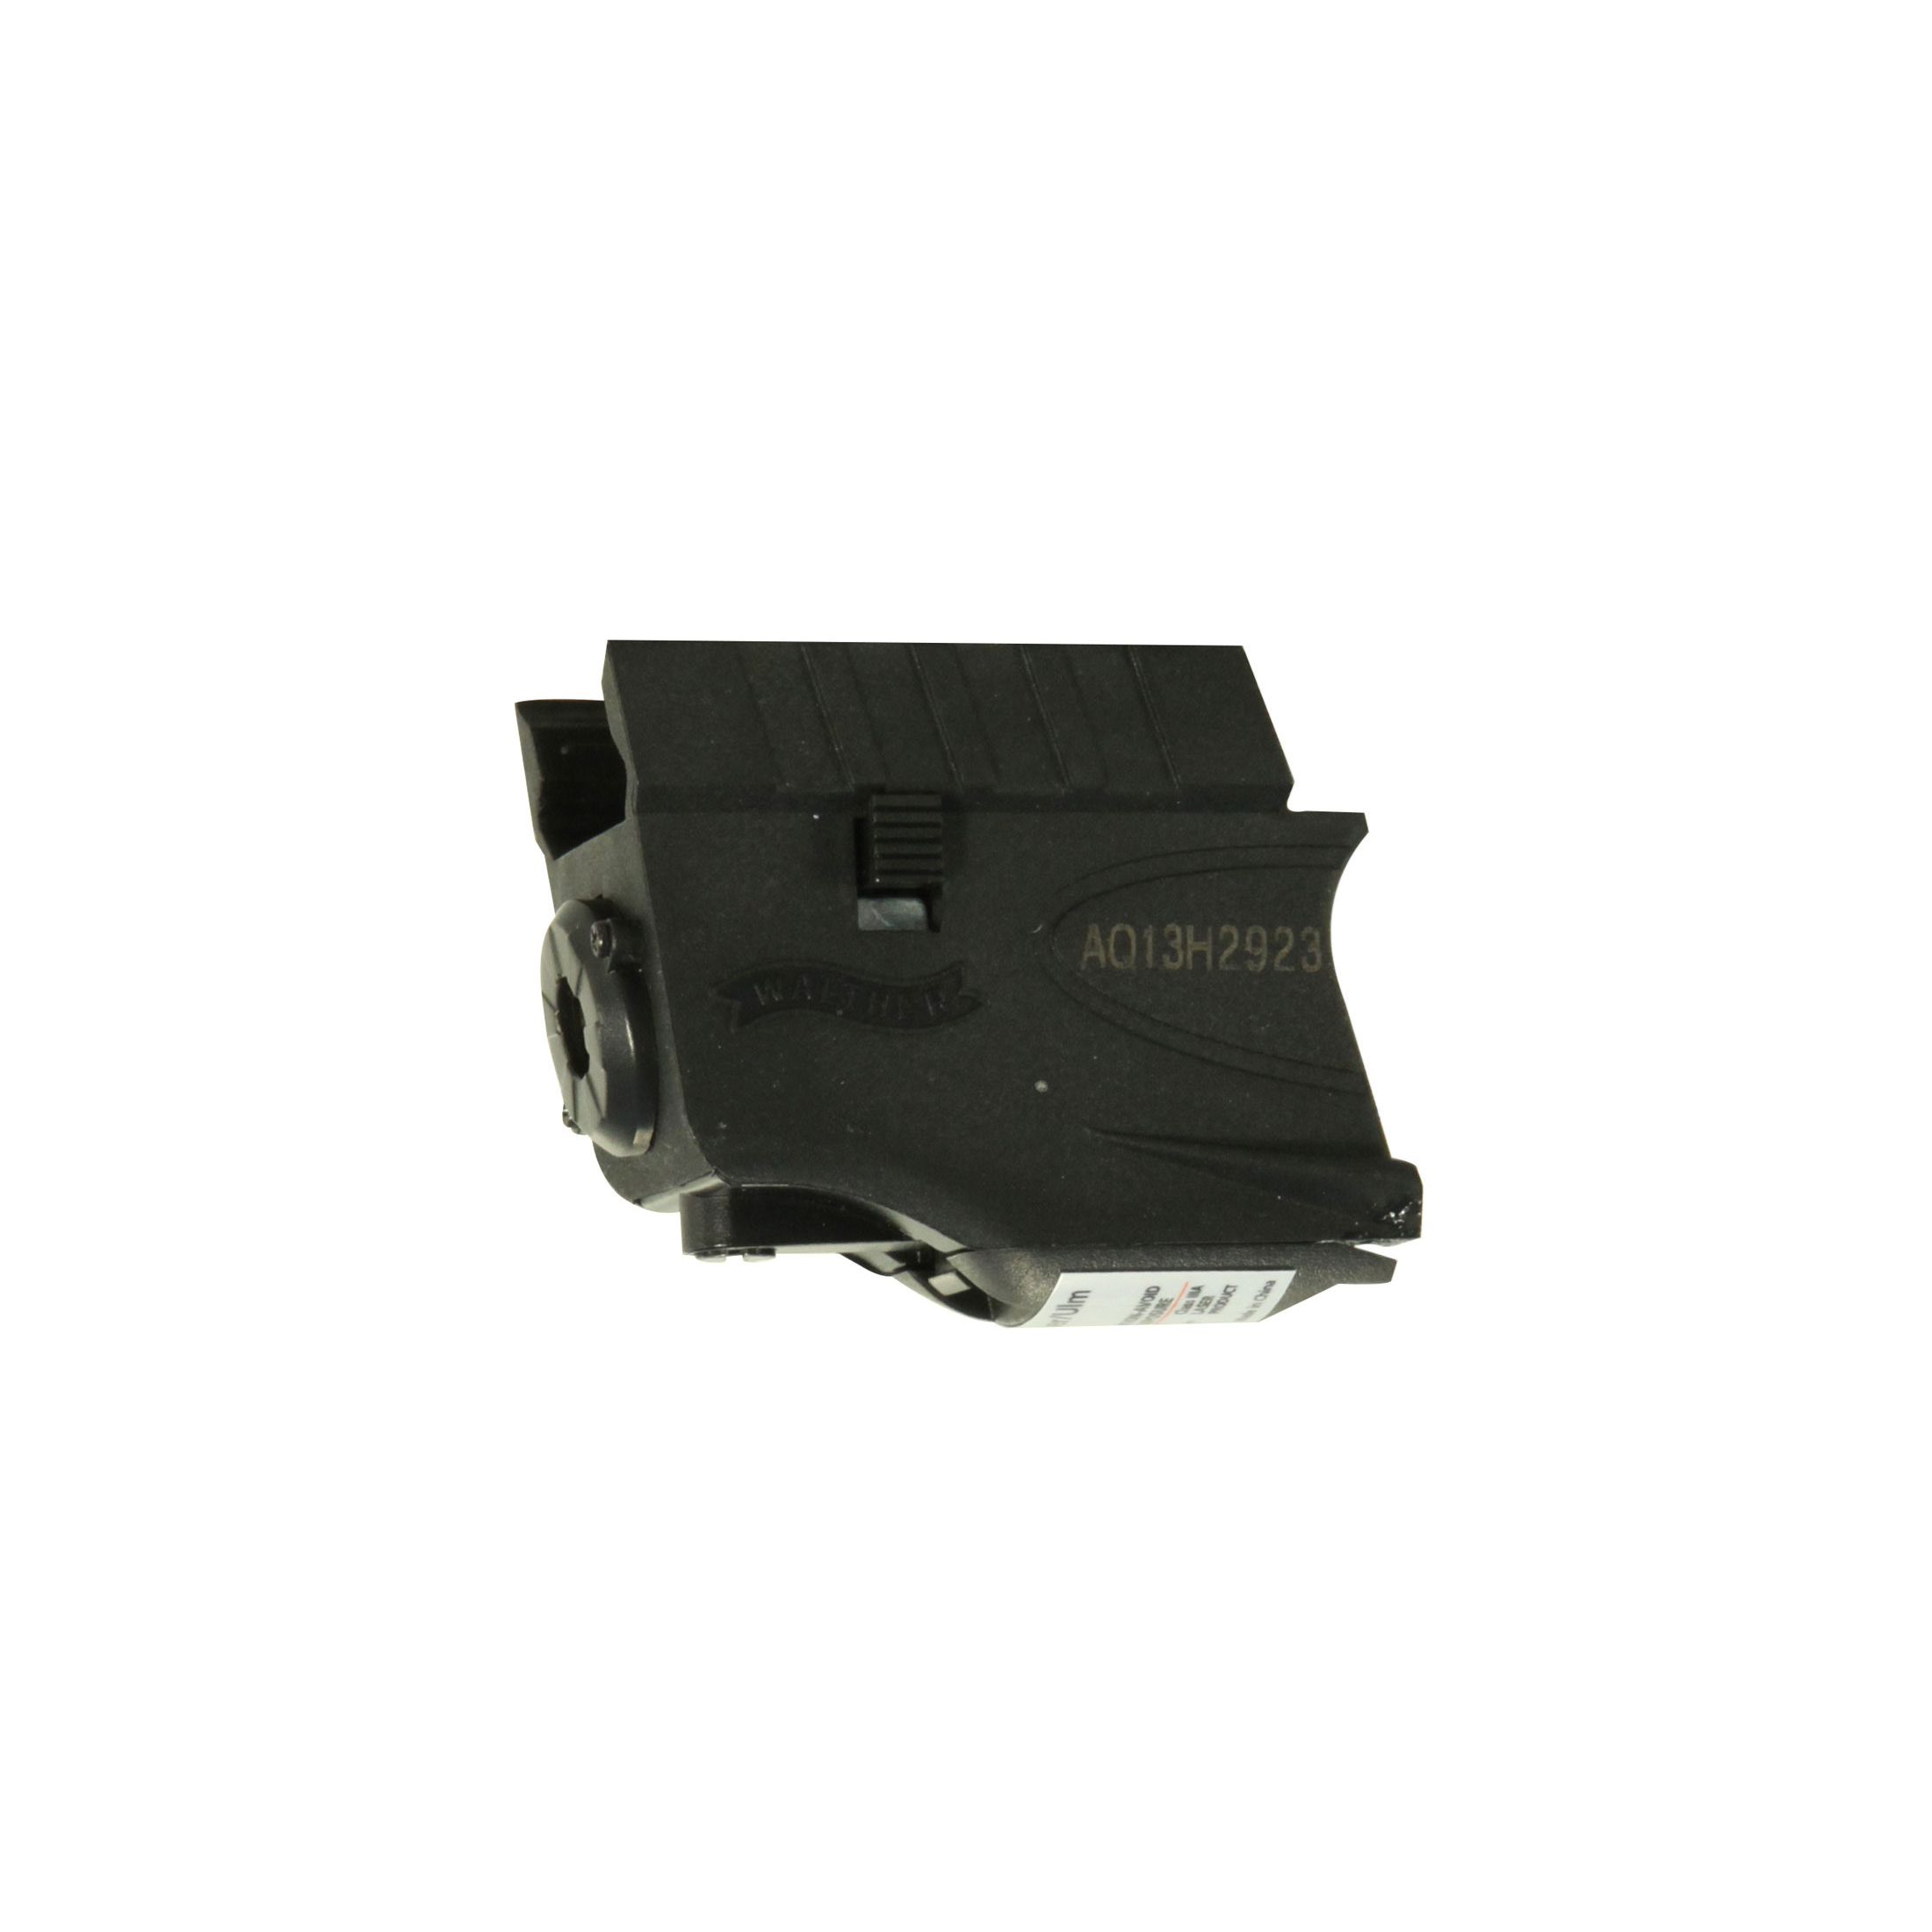 WALTHER-LASER-SIGHT-PK380-505100_505100